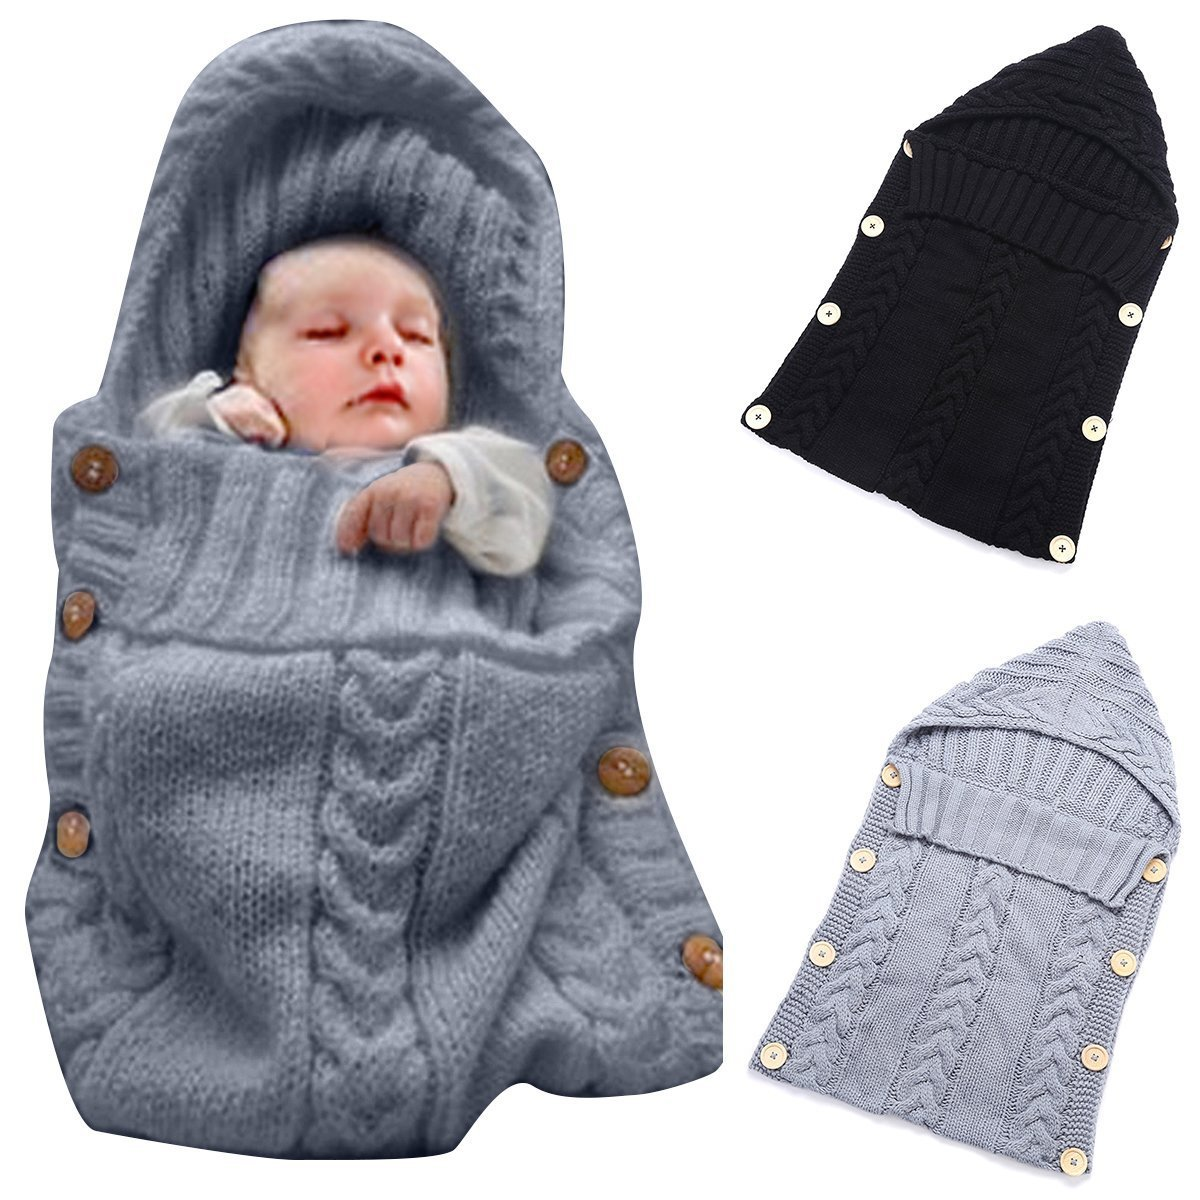 Baby Stroller Sleeping Bag Warm Swaddle Quilt Blanket Wrap Sleep Sack Stroller Accessories Anti Cold Child Baby Winter Leg Cover Strollers Accessories Mother & Kids